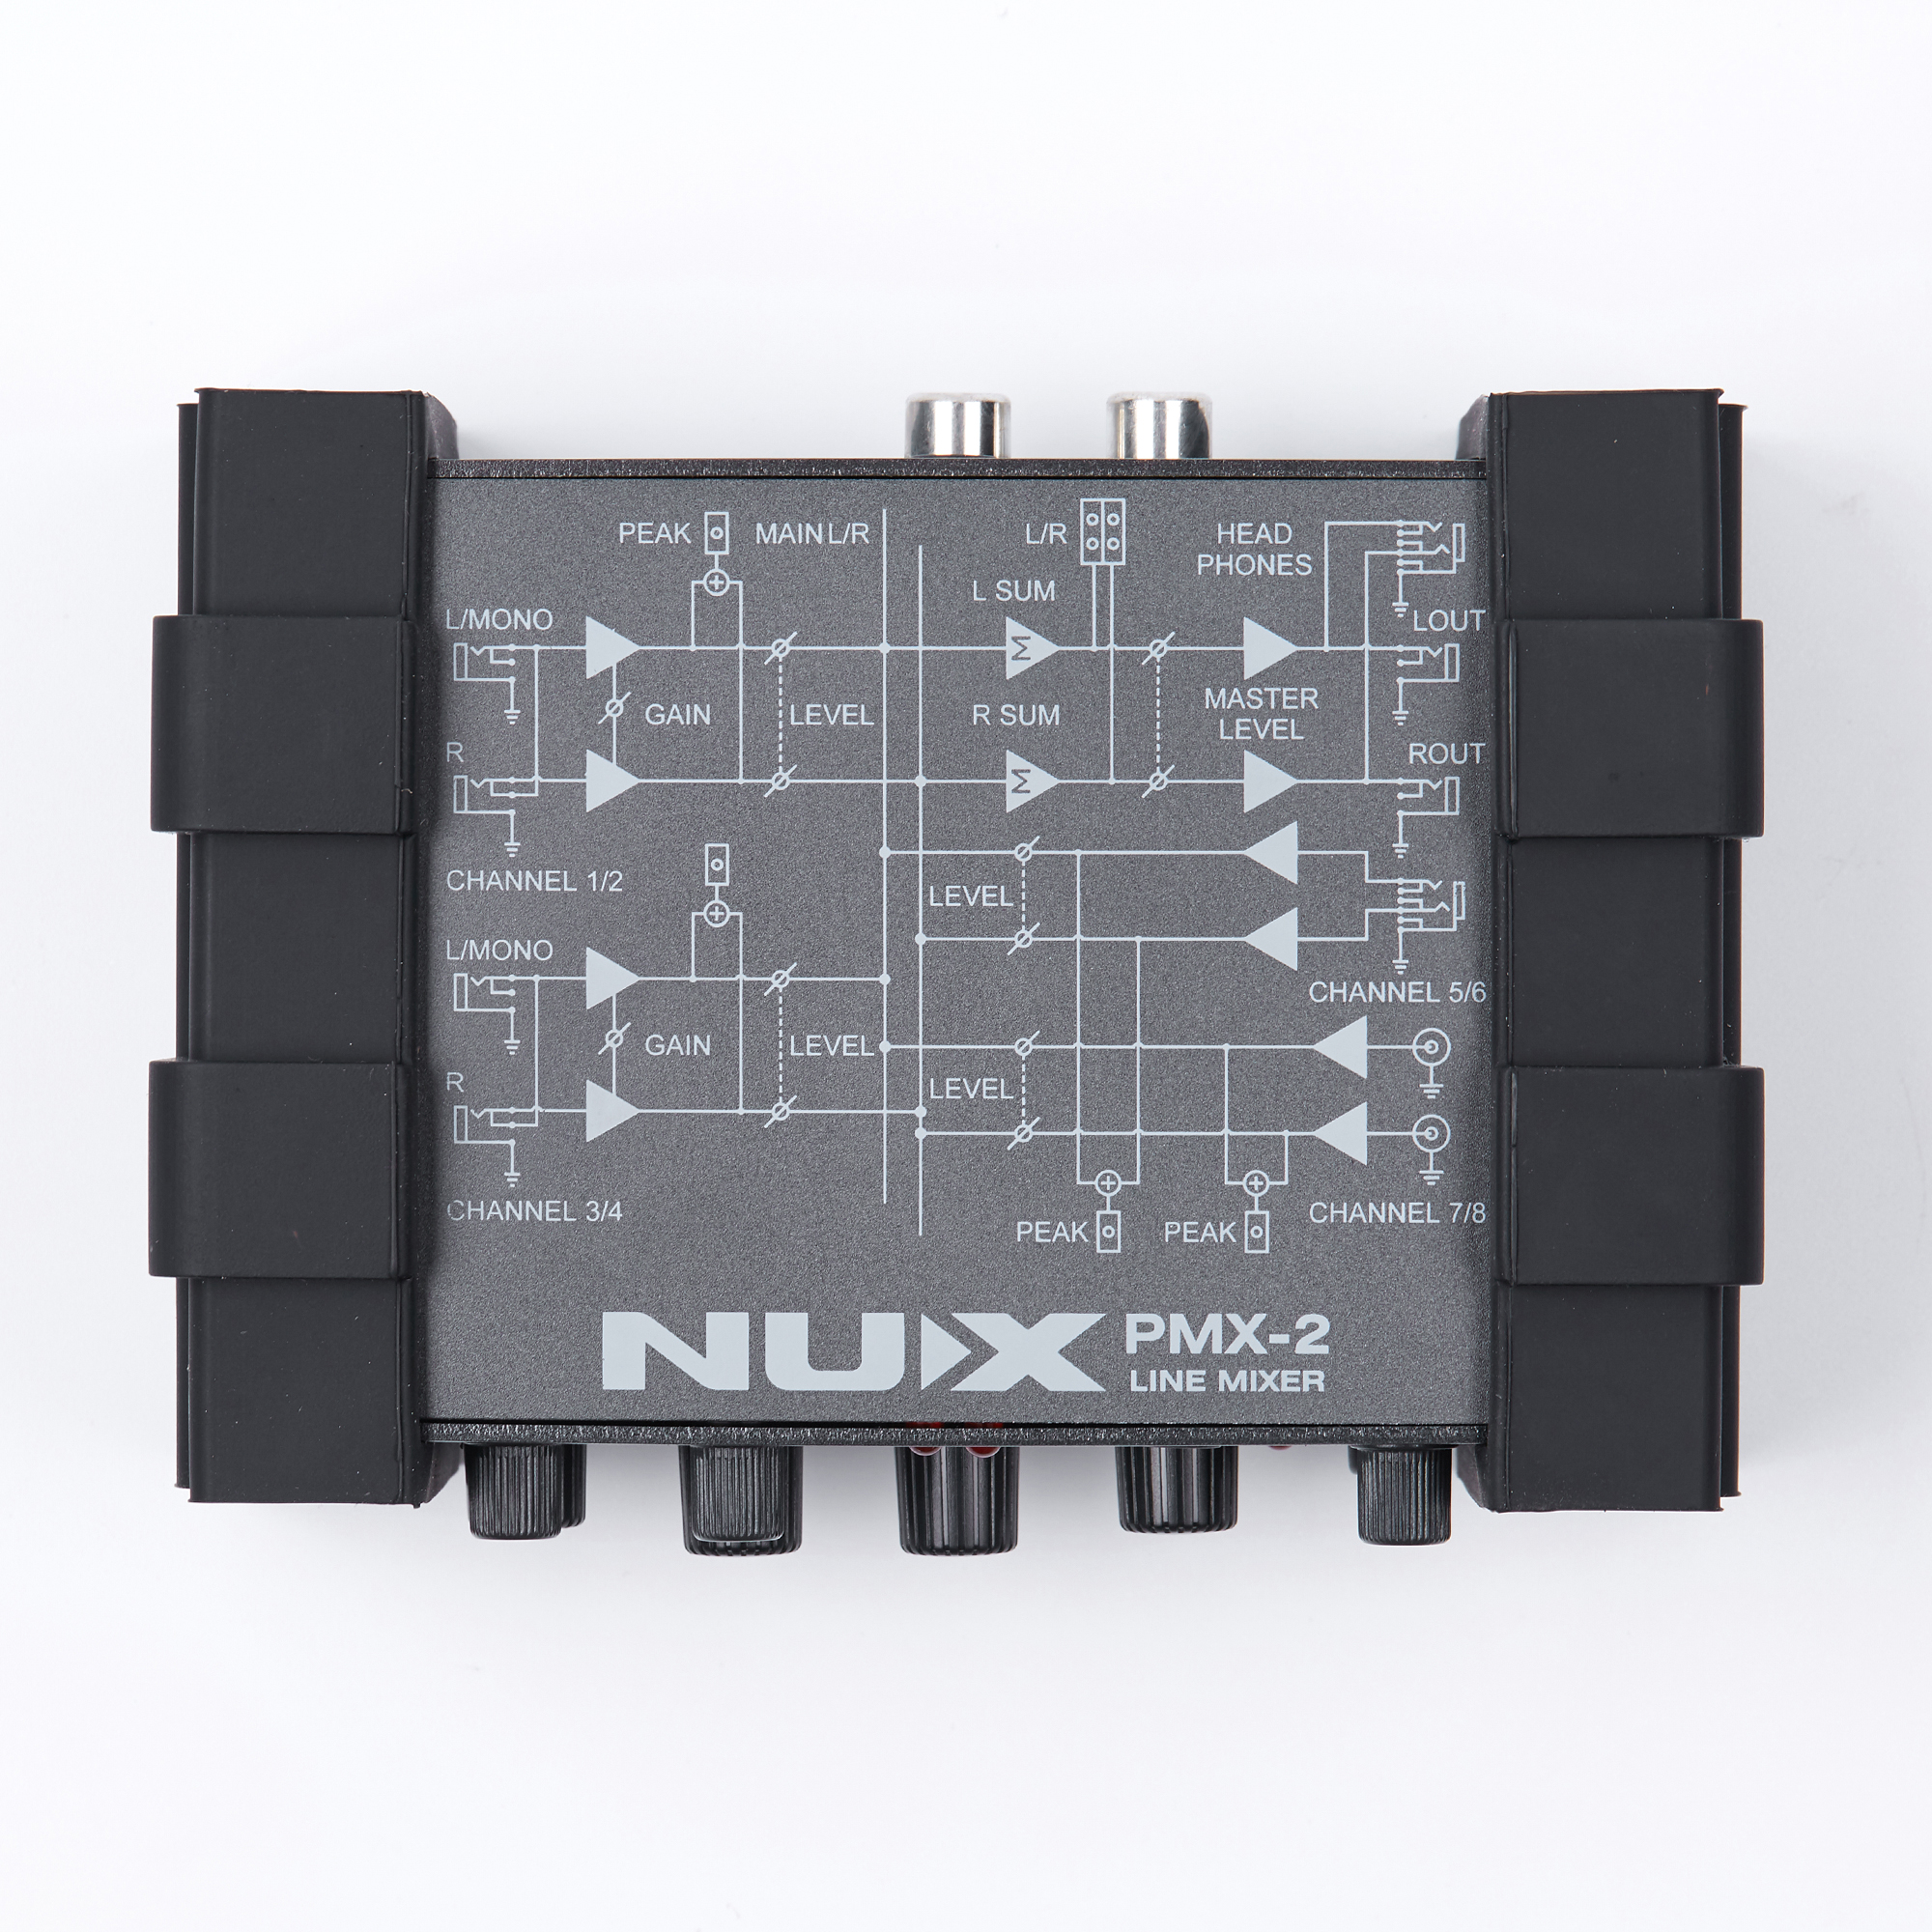 Gain Control 8 Inputs and 2 Outputs NUX PMX-2 Multi-Channel Mini Mixer 30 Musical Instruments Accessories for Guitar Bass Player free shipping sc series 32x75 double acting pneumatic air standard cylinder 32mm bore 75mm stroke 5pcs in lot